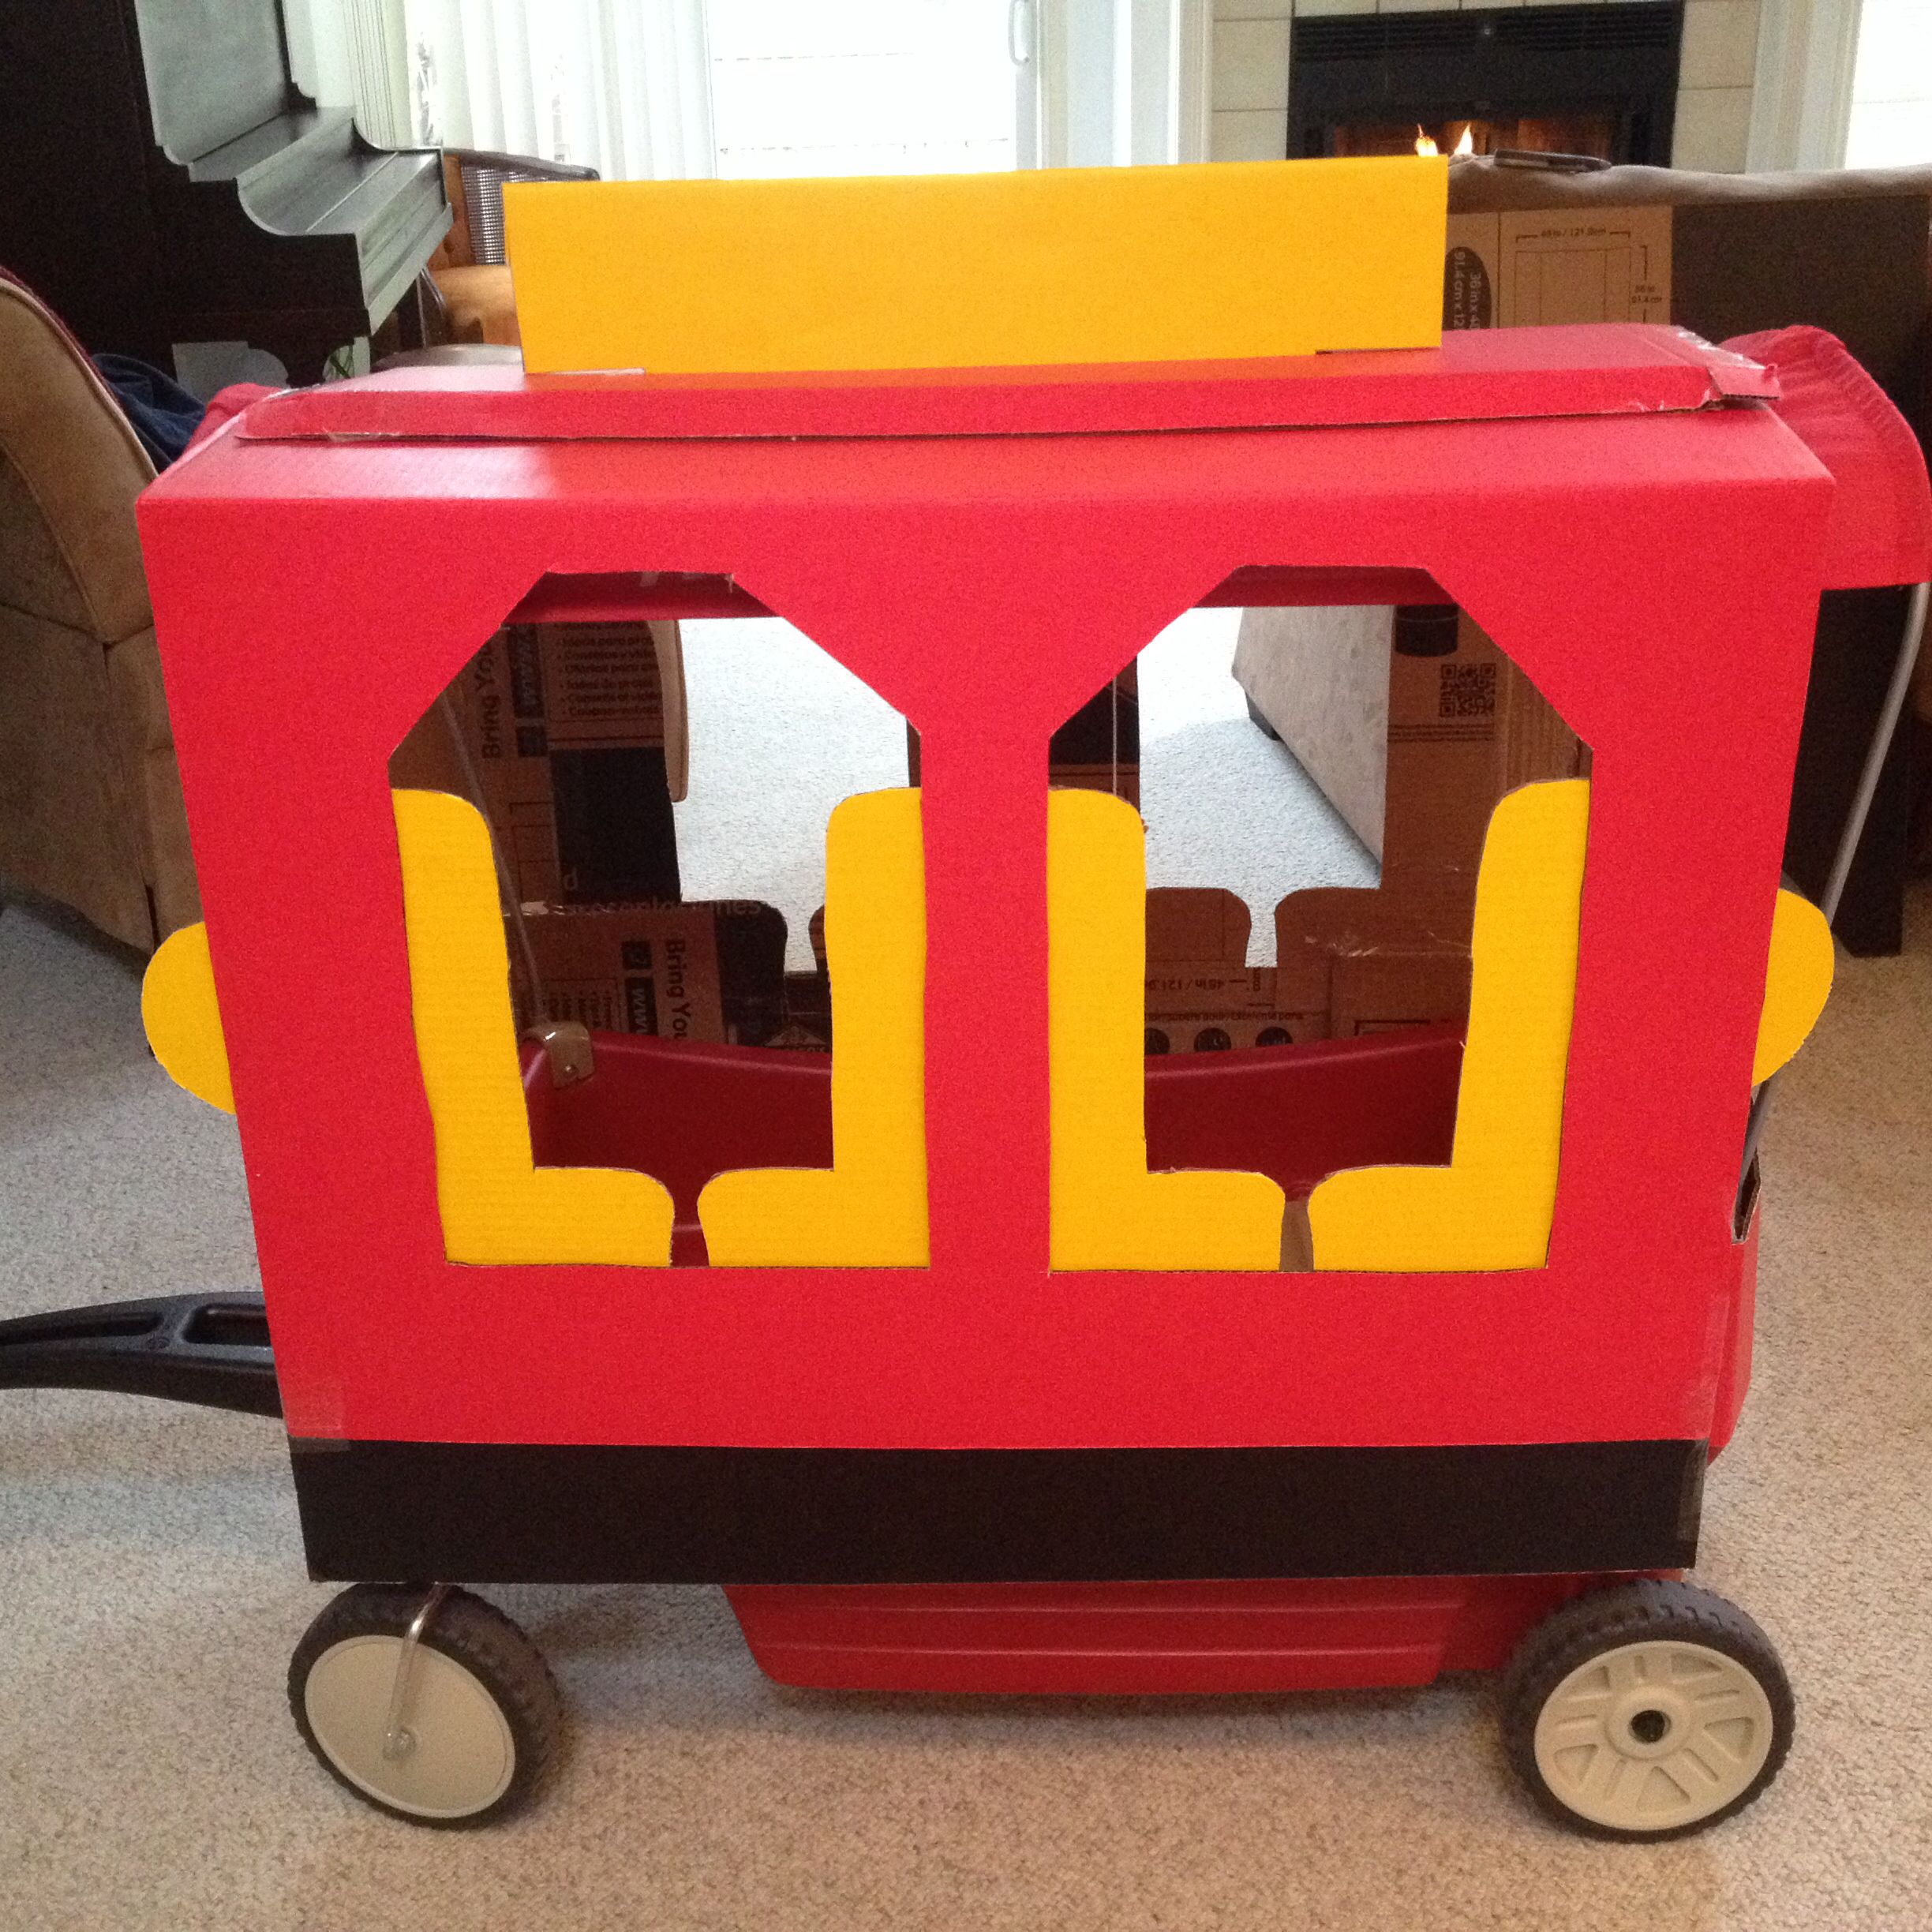 We turned our wagon into a trolley! … Daniel tiger